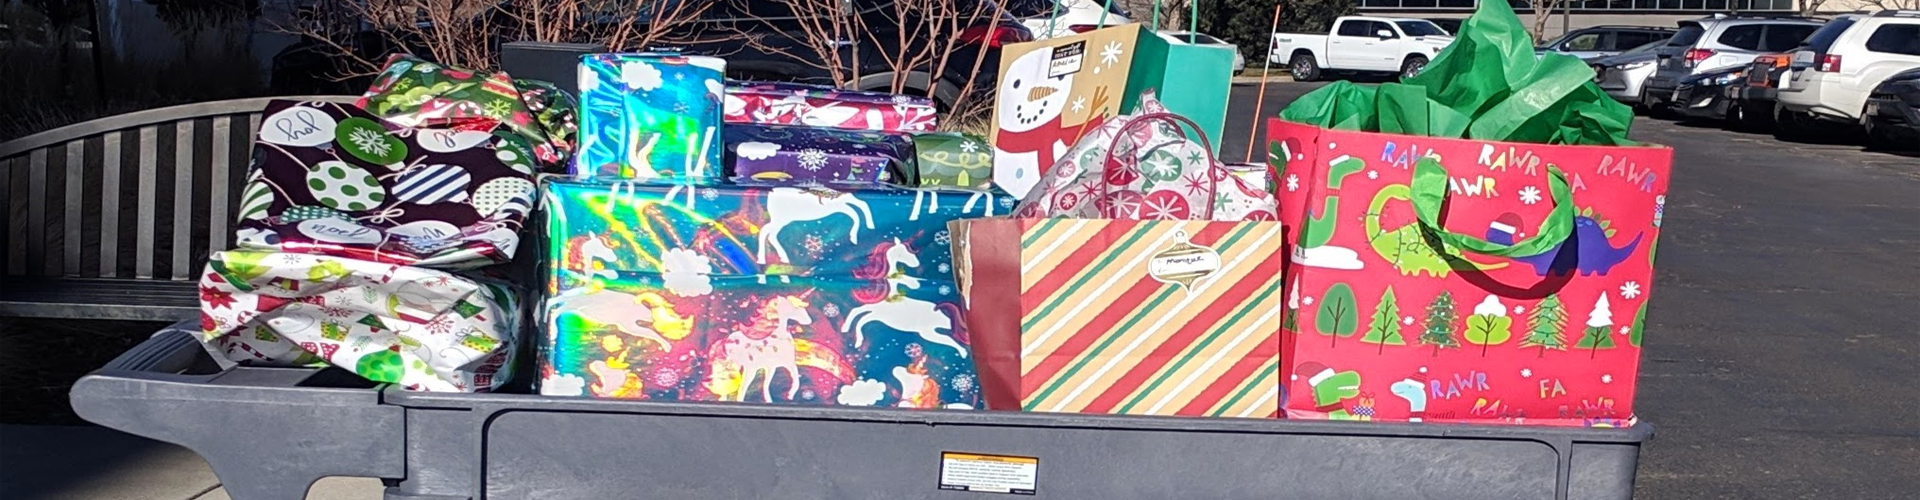 Hitachi Group Companies Collect Holiday Gifts